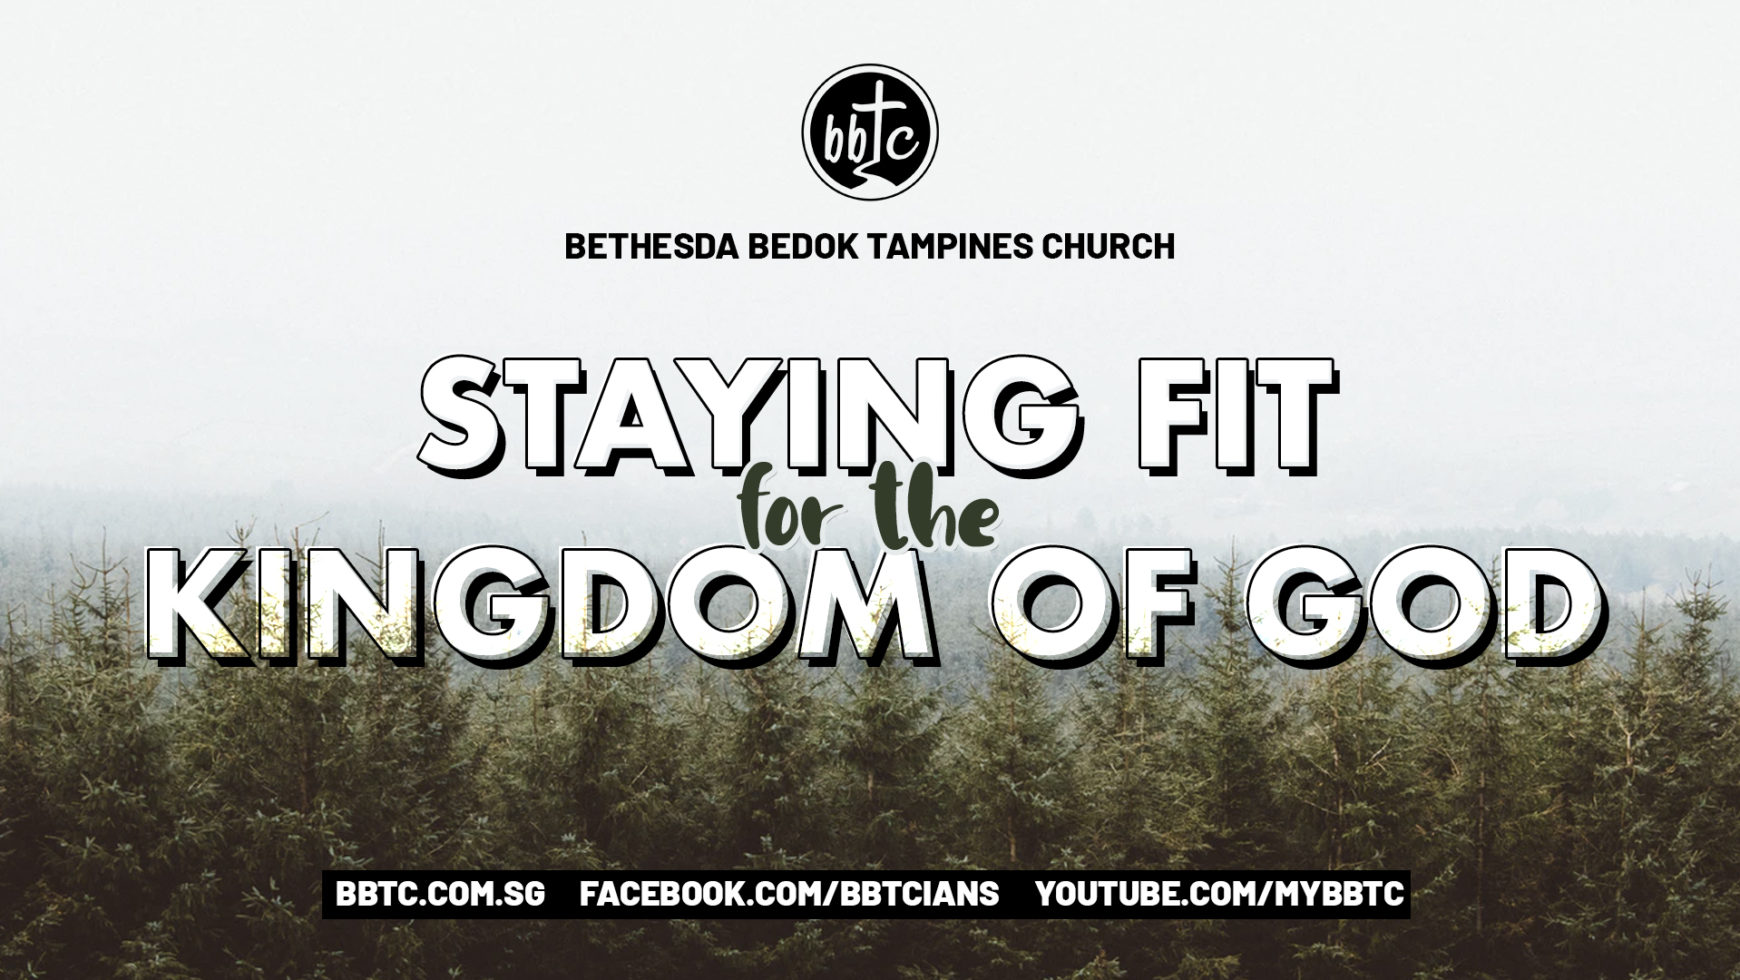 STAYING FIT FOR THE KINGDOM OF GOD